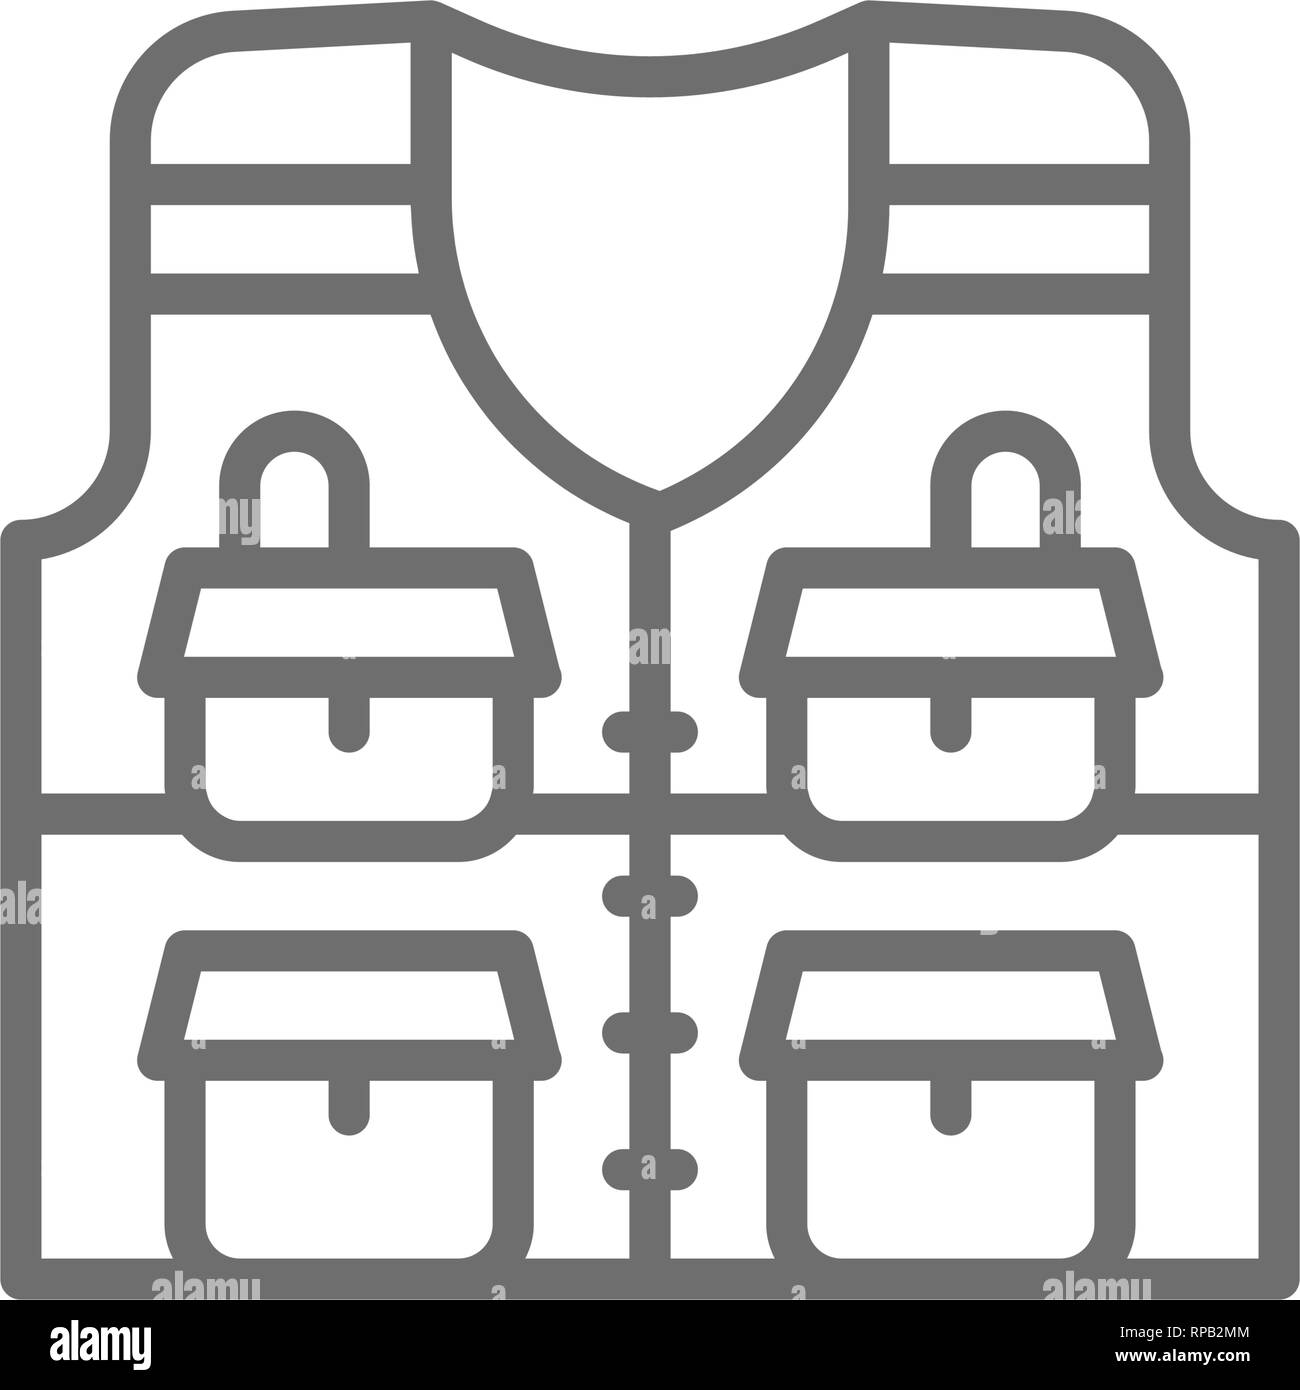 Vest with pockets, fishing jacket line icon. - Stock Image